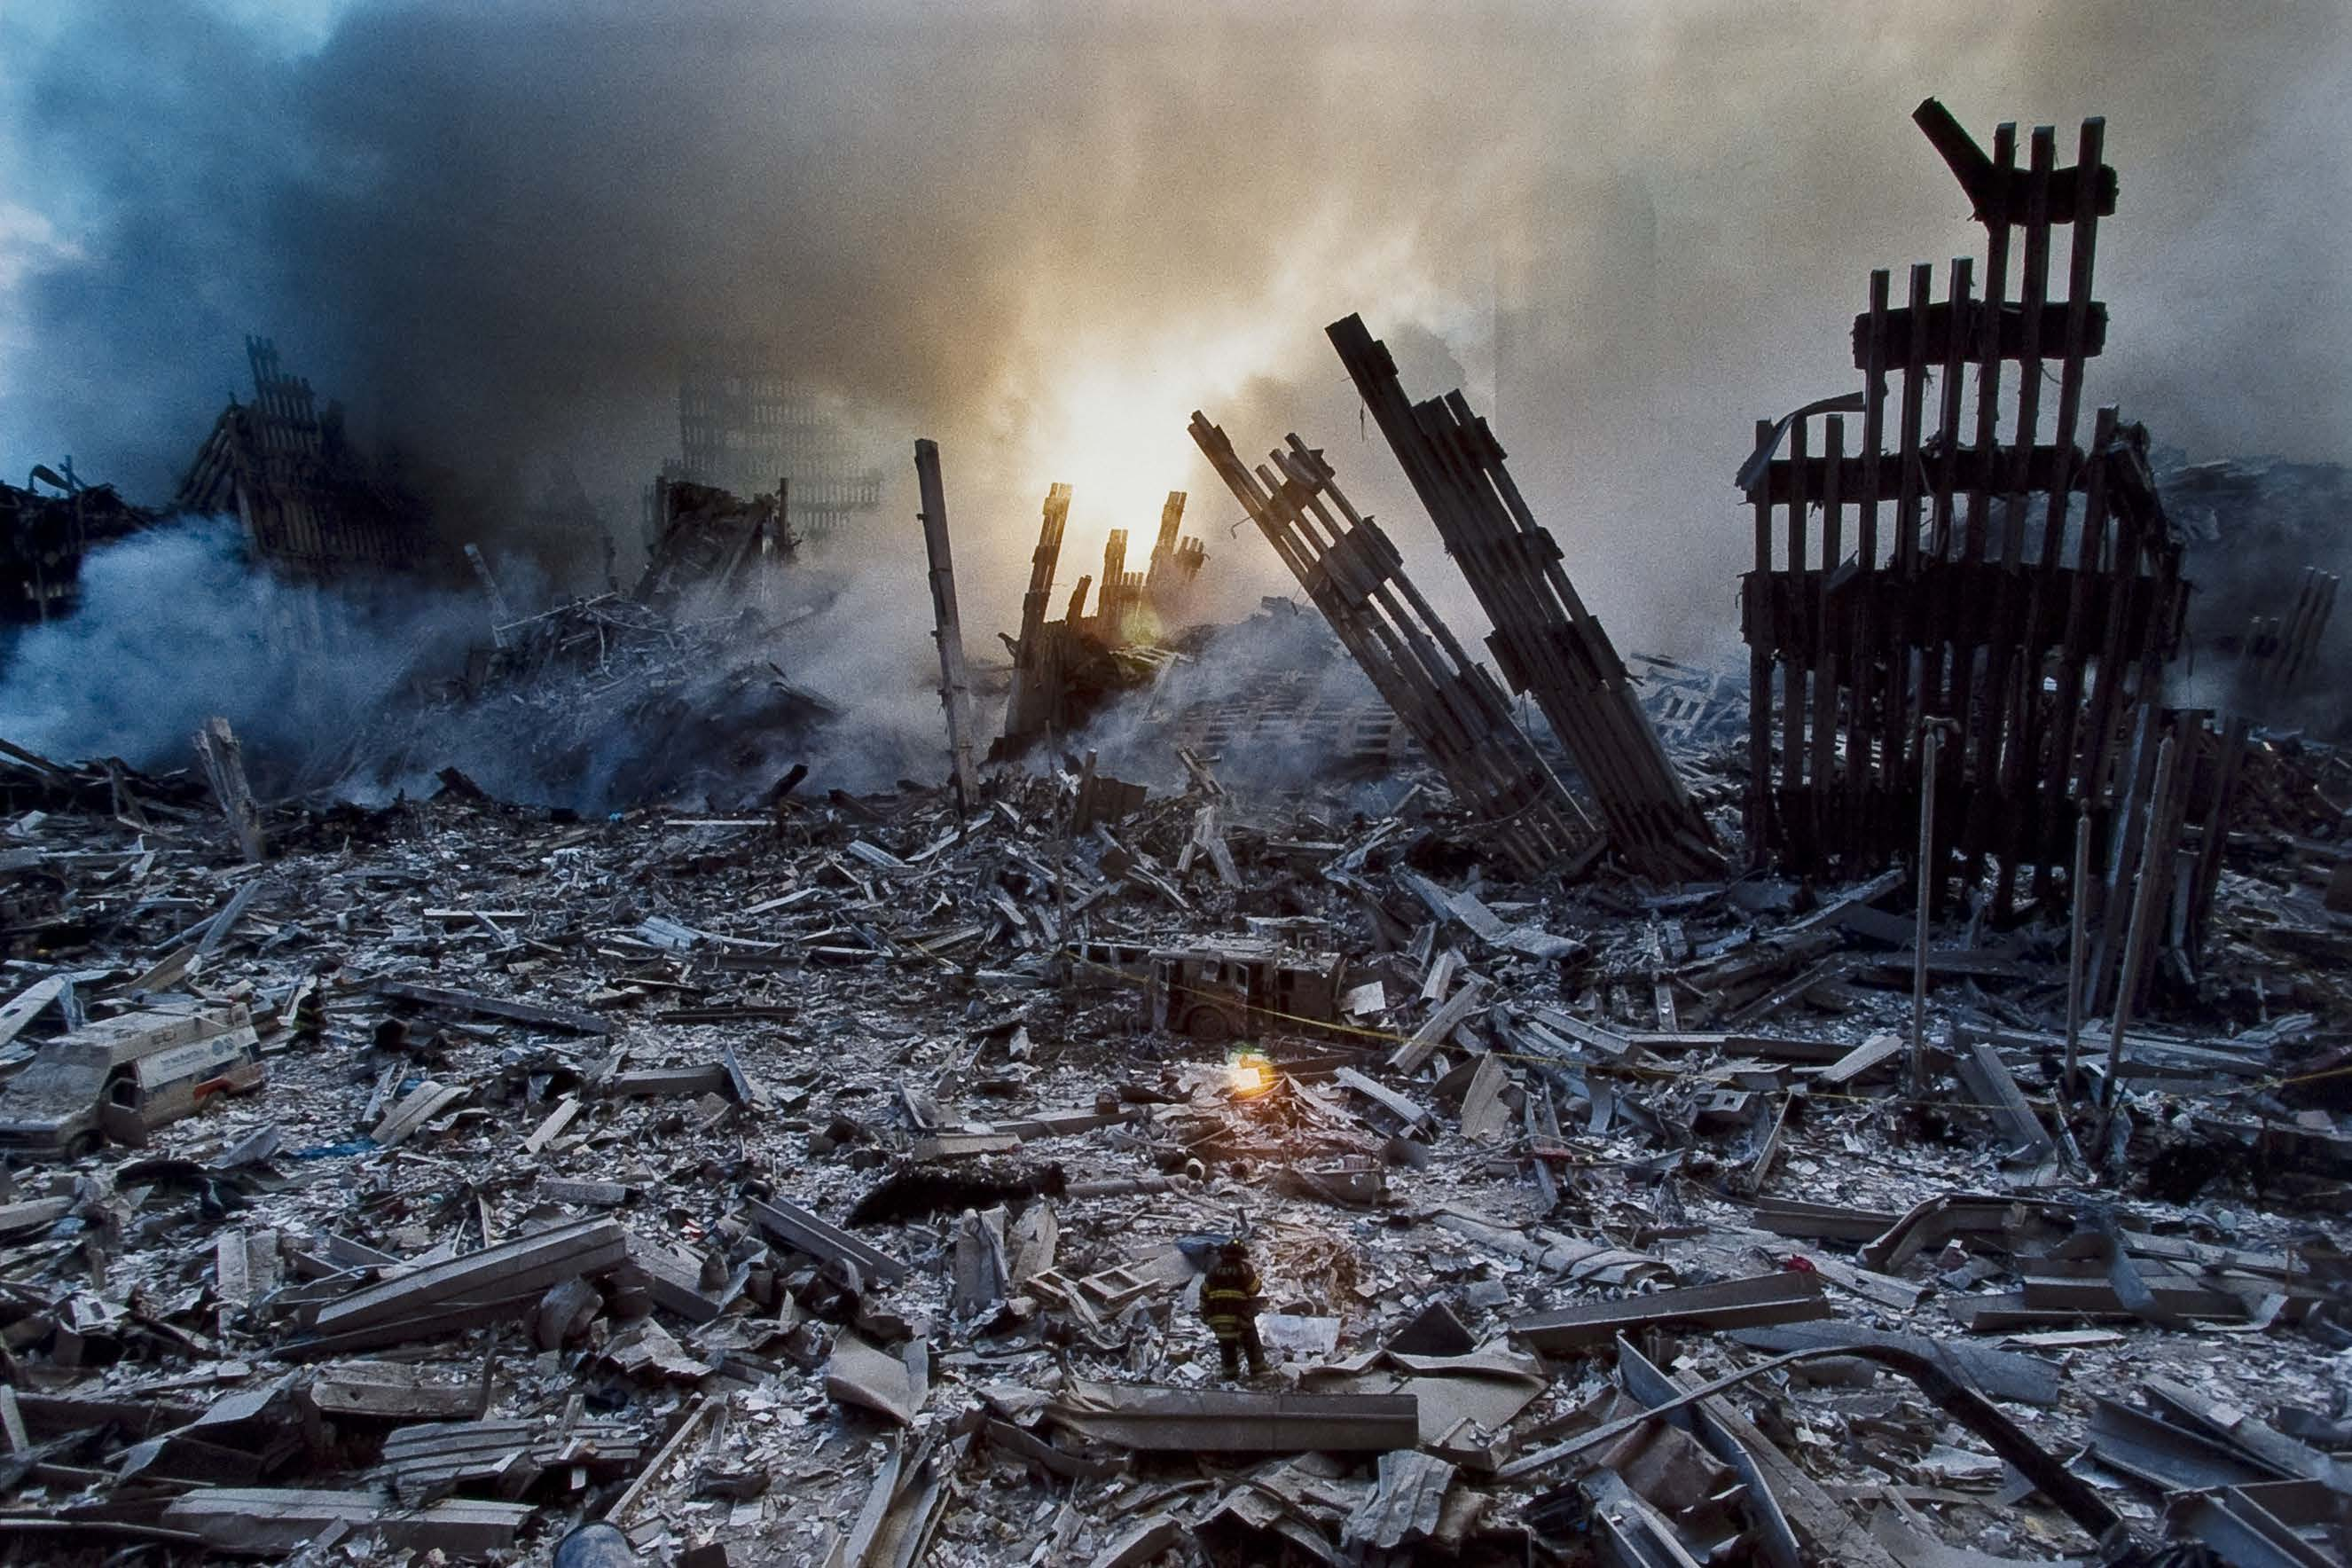 Aftermath of 9-11